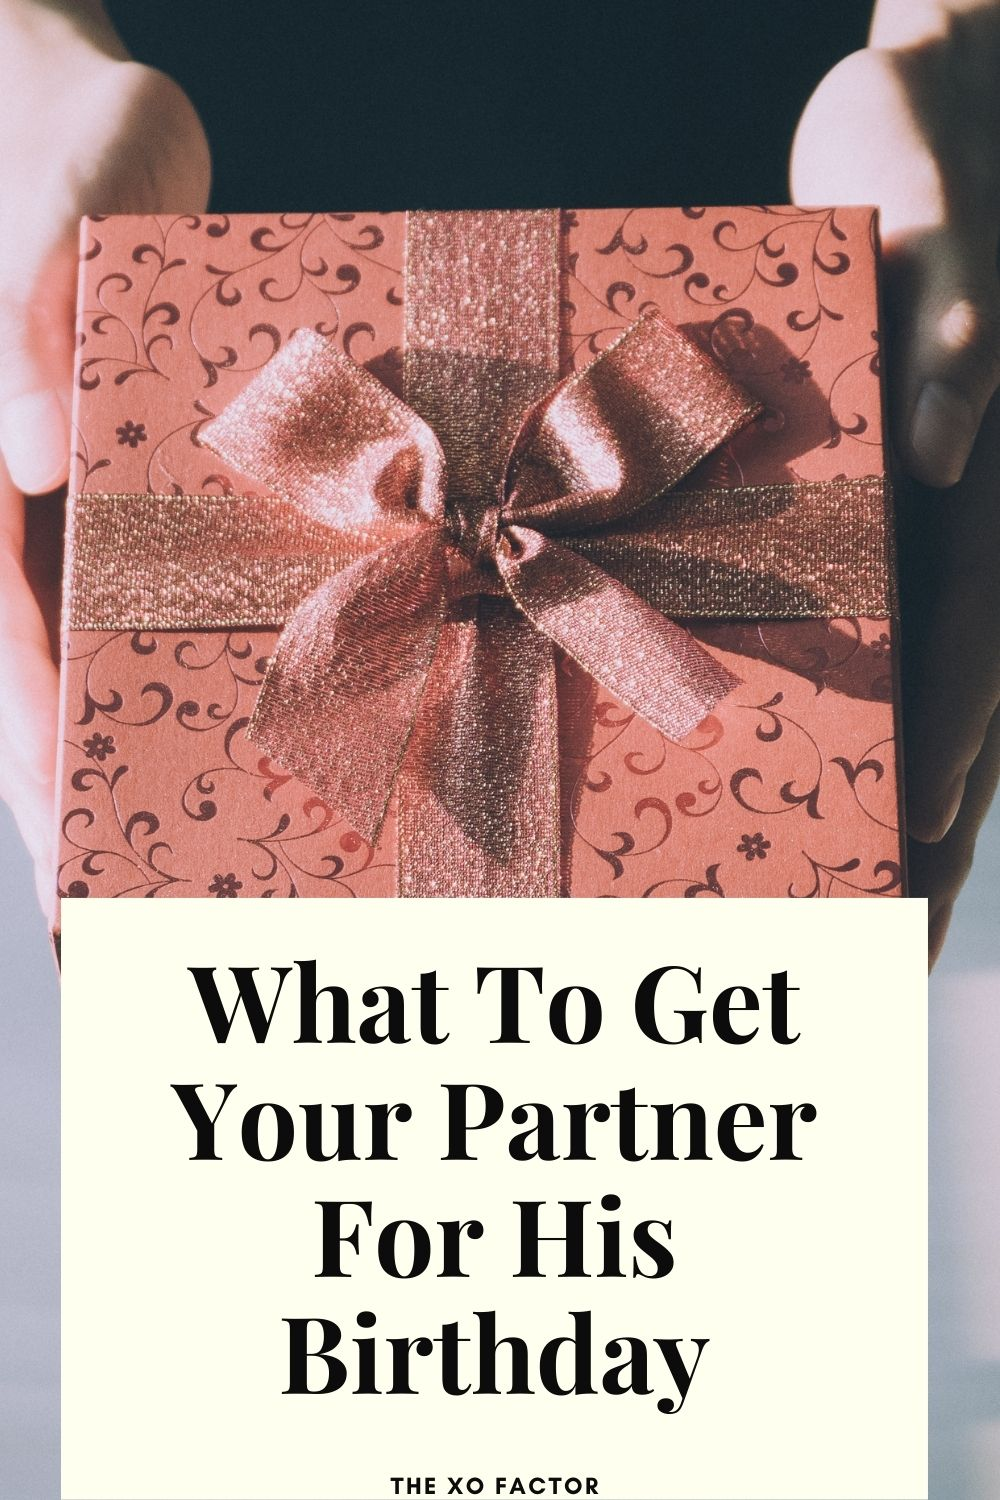 what to get your partner for his birthday